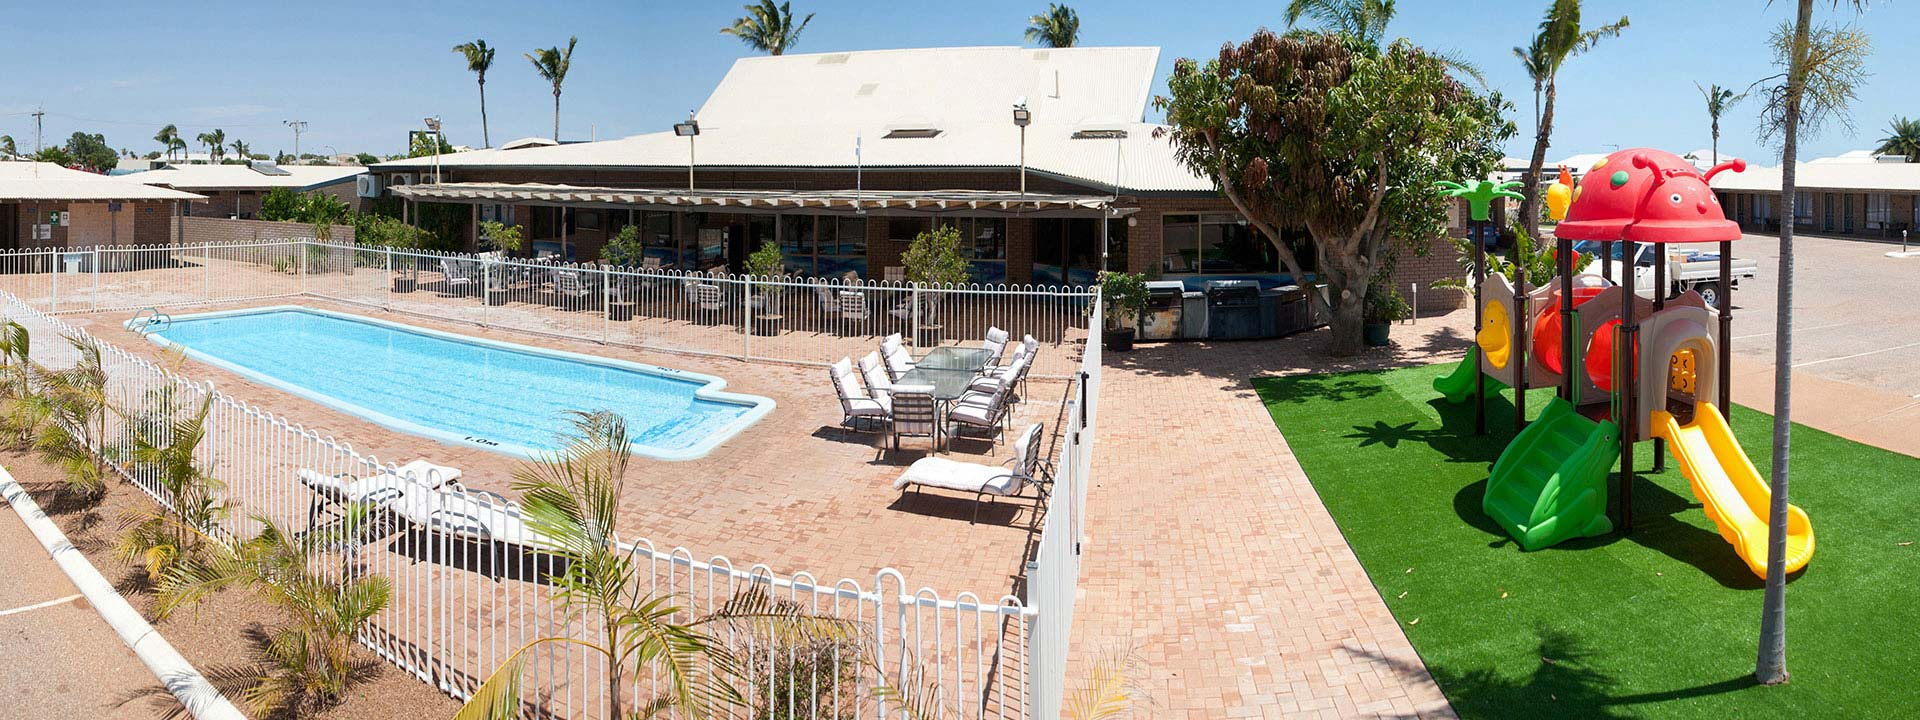 Experience a very warm welcome to Carnarvon Motel